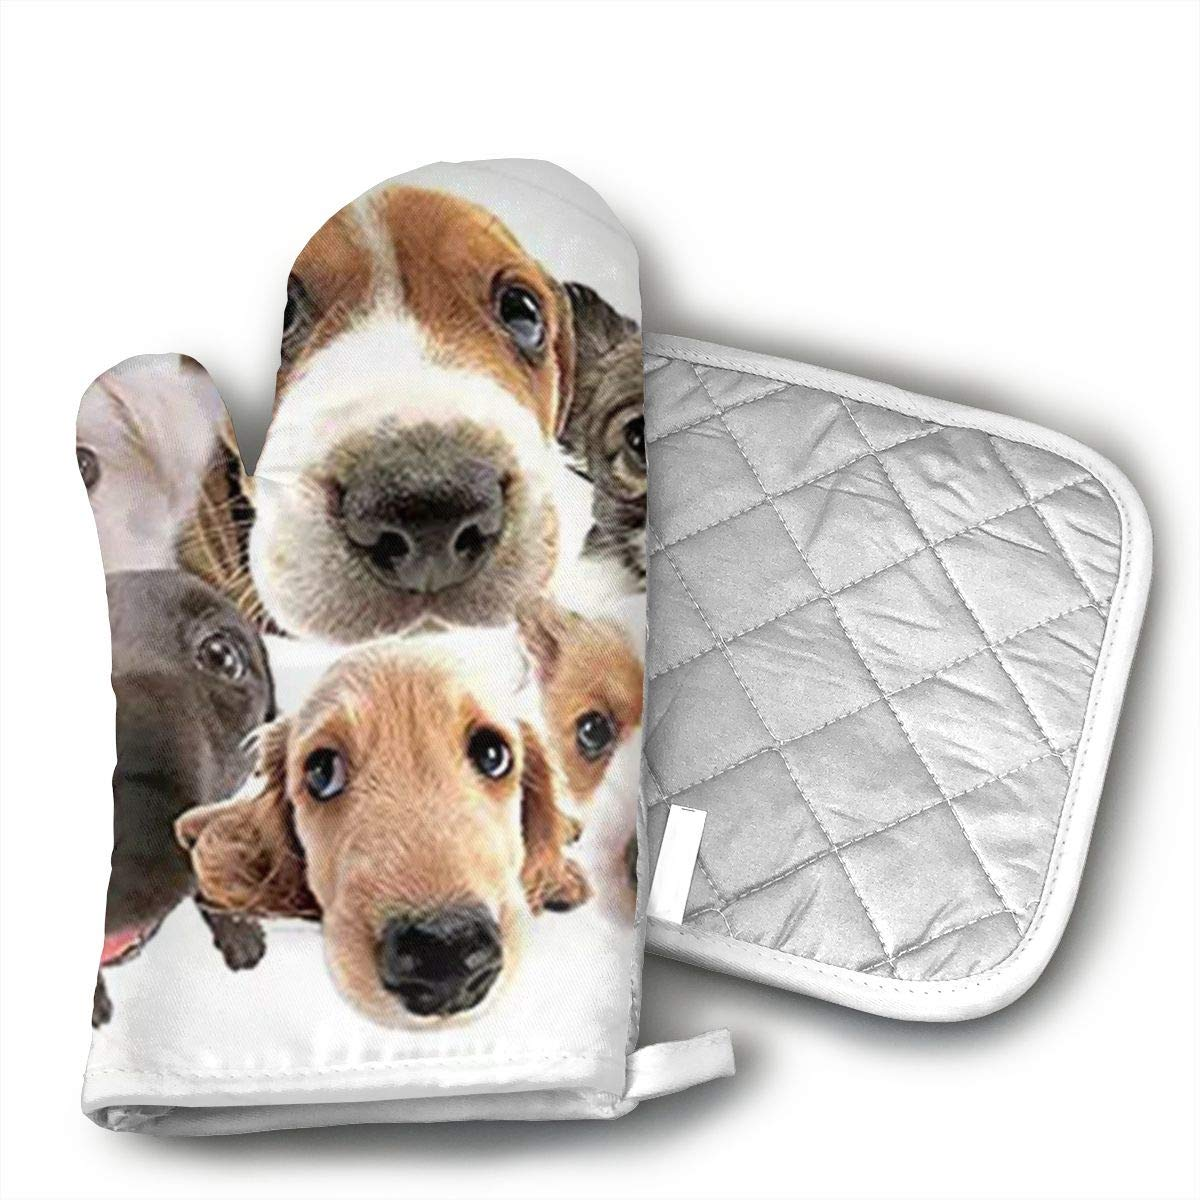 HAIQLK Animal Print Cute Dog Puppy Pug Oven Mitts Printing Cotton Lining, Kitchen Oven Gloves Pot Holder for Cooking, Barbecue Cooking Baking, Barbecue